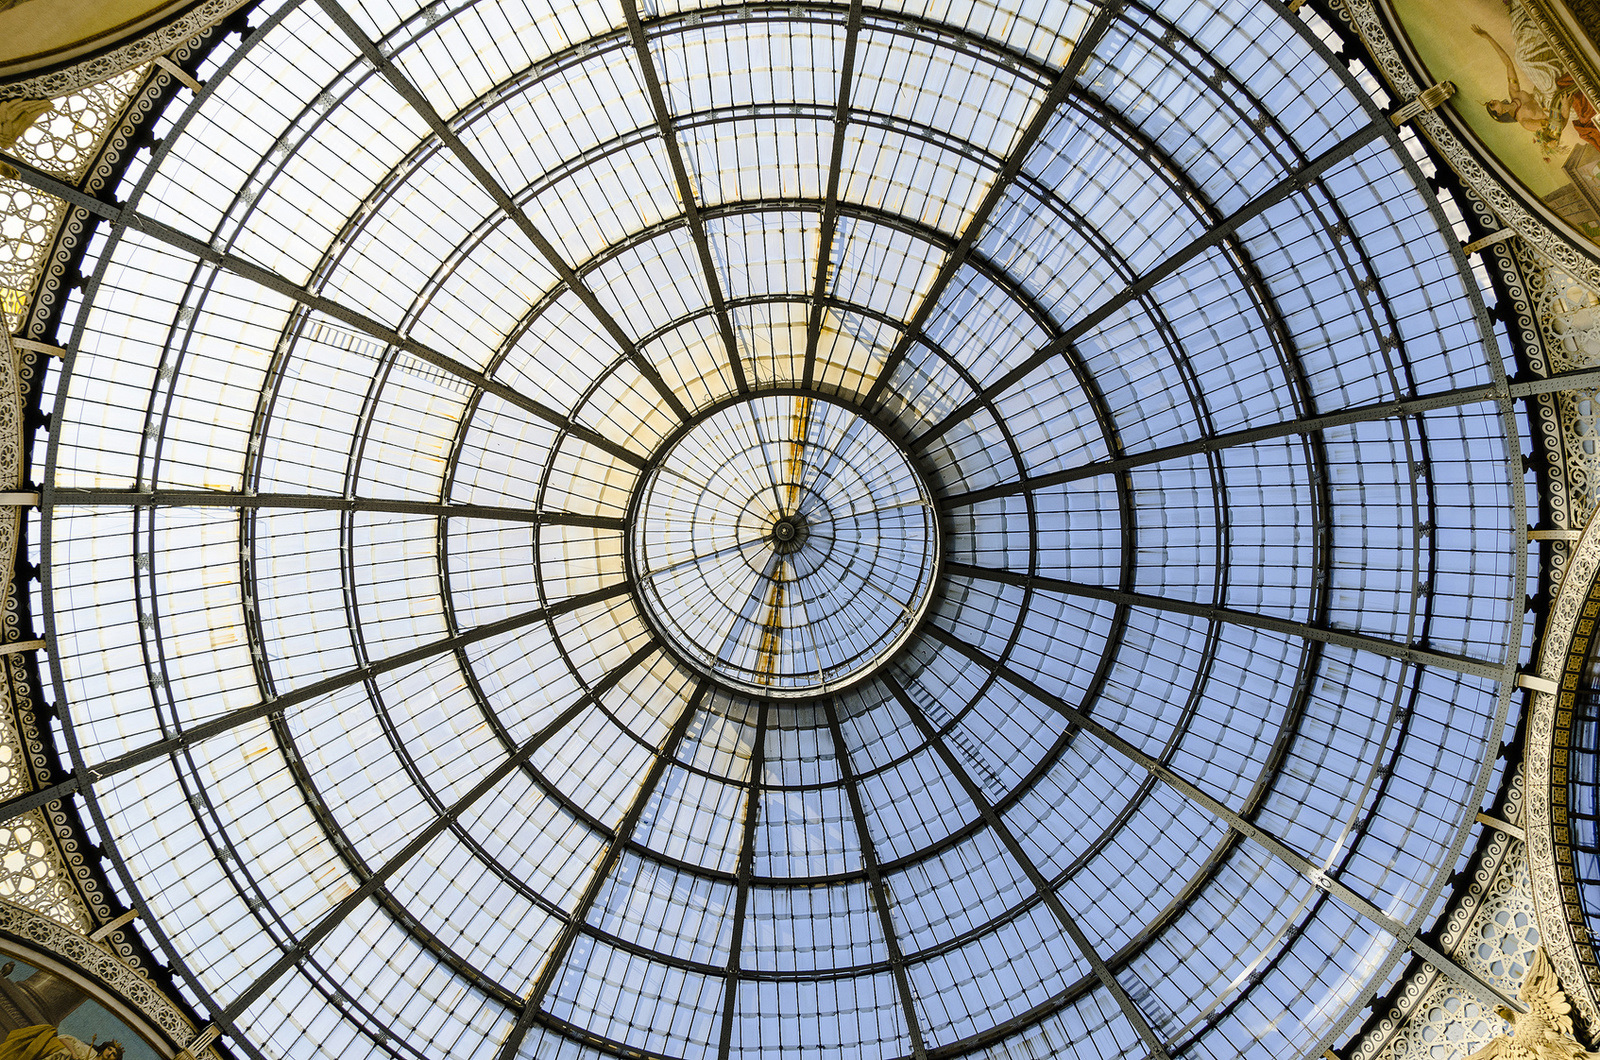 modern glass dome roofing architecture